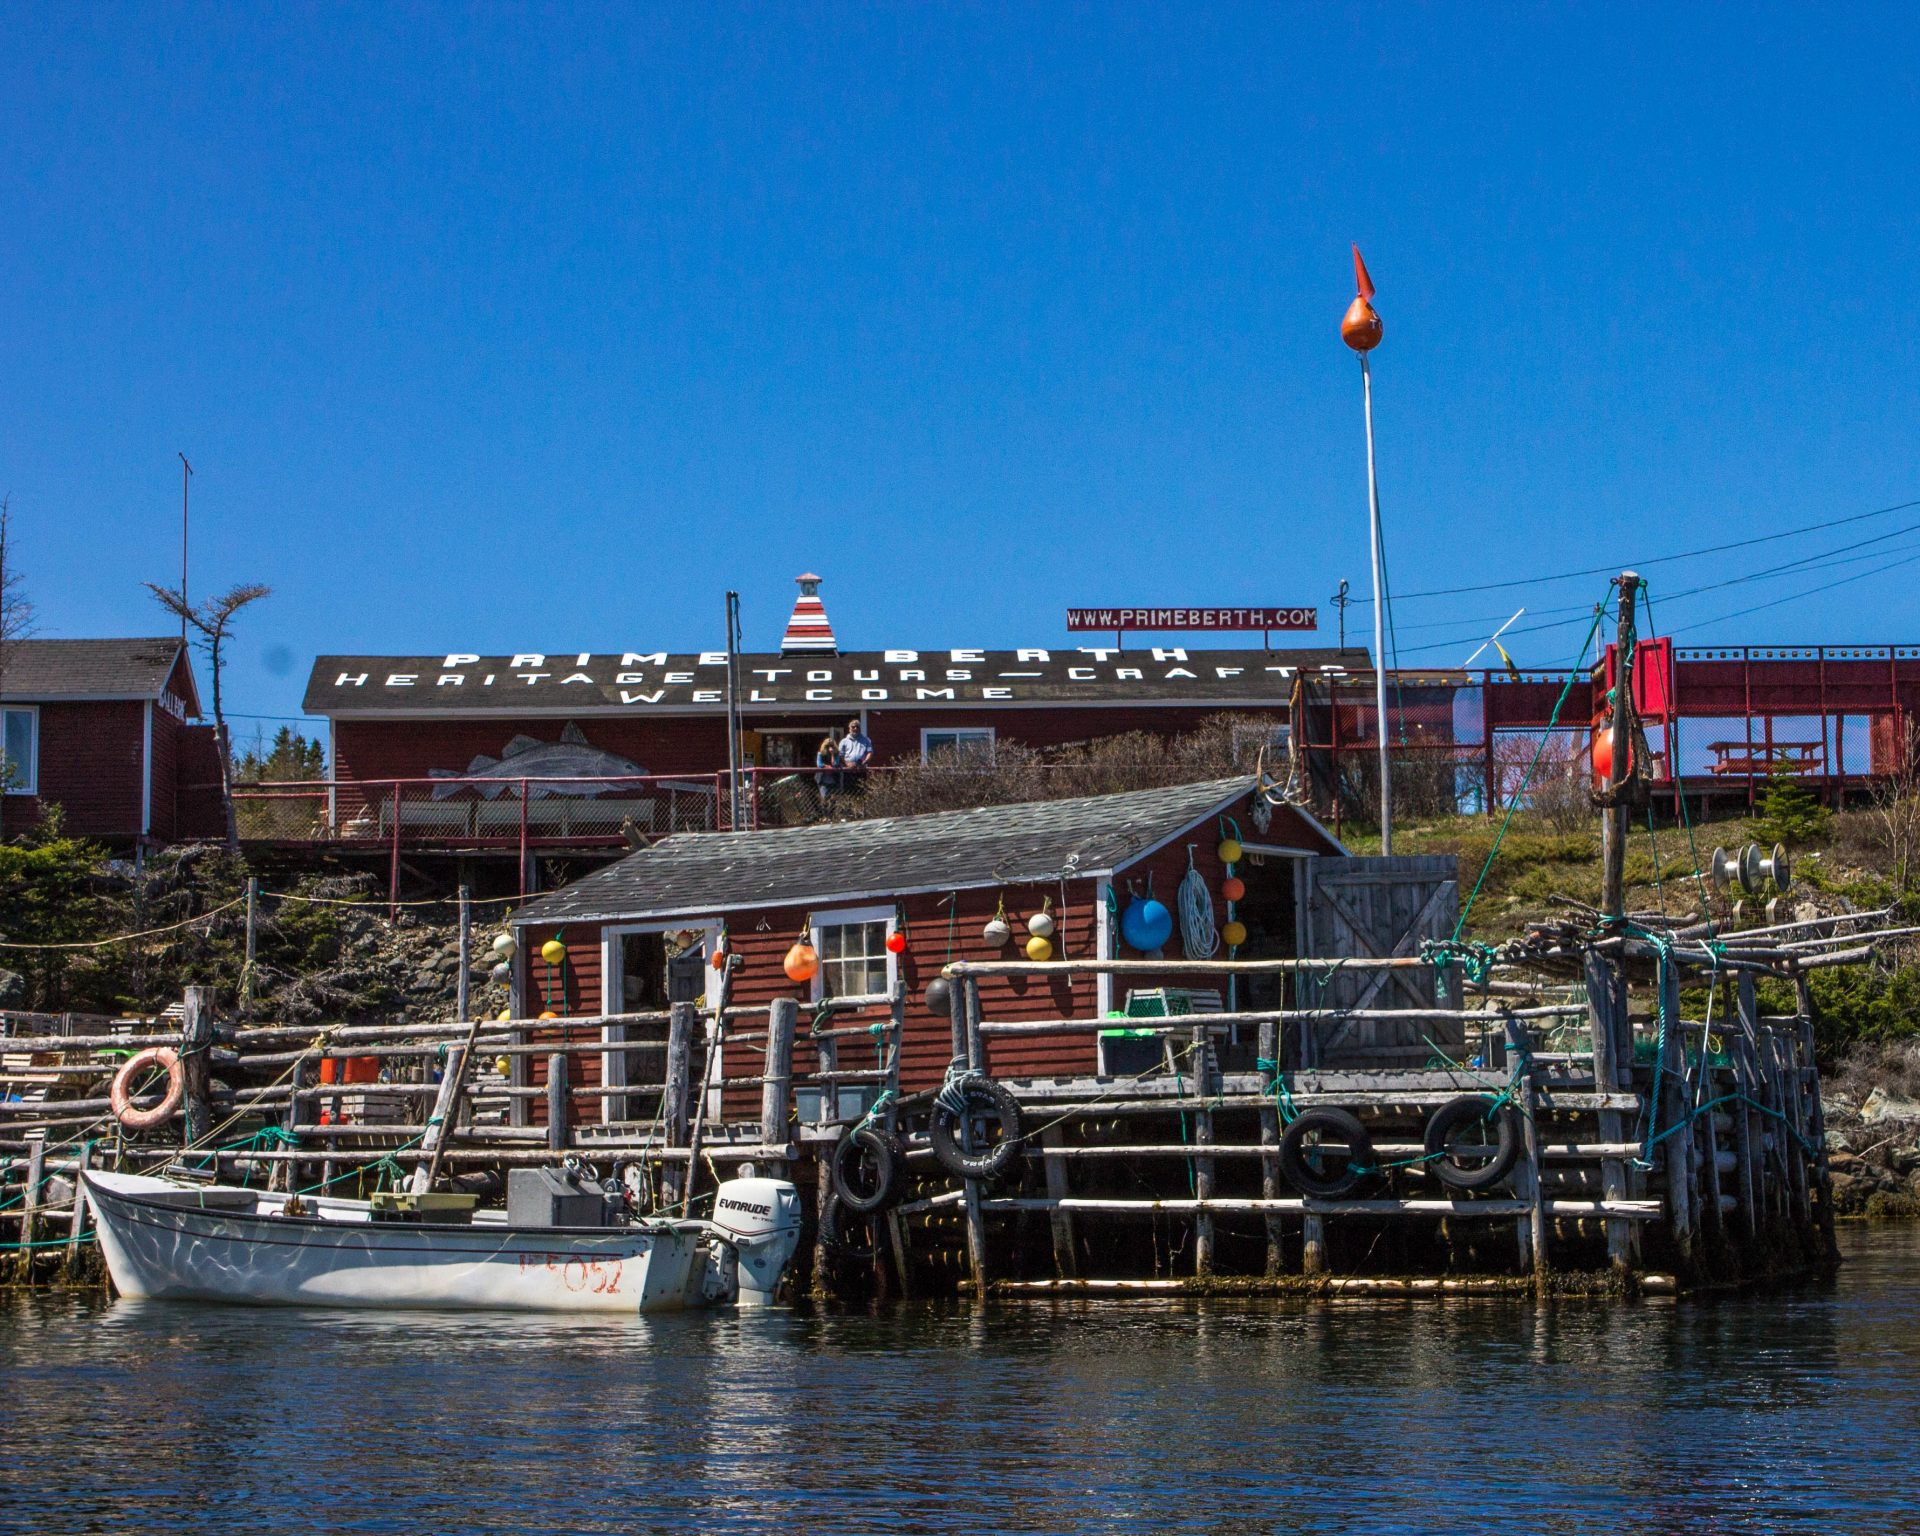 A quaint fishing museum sits on the water in Newfoundland - Icebergs in Twillingate